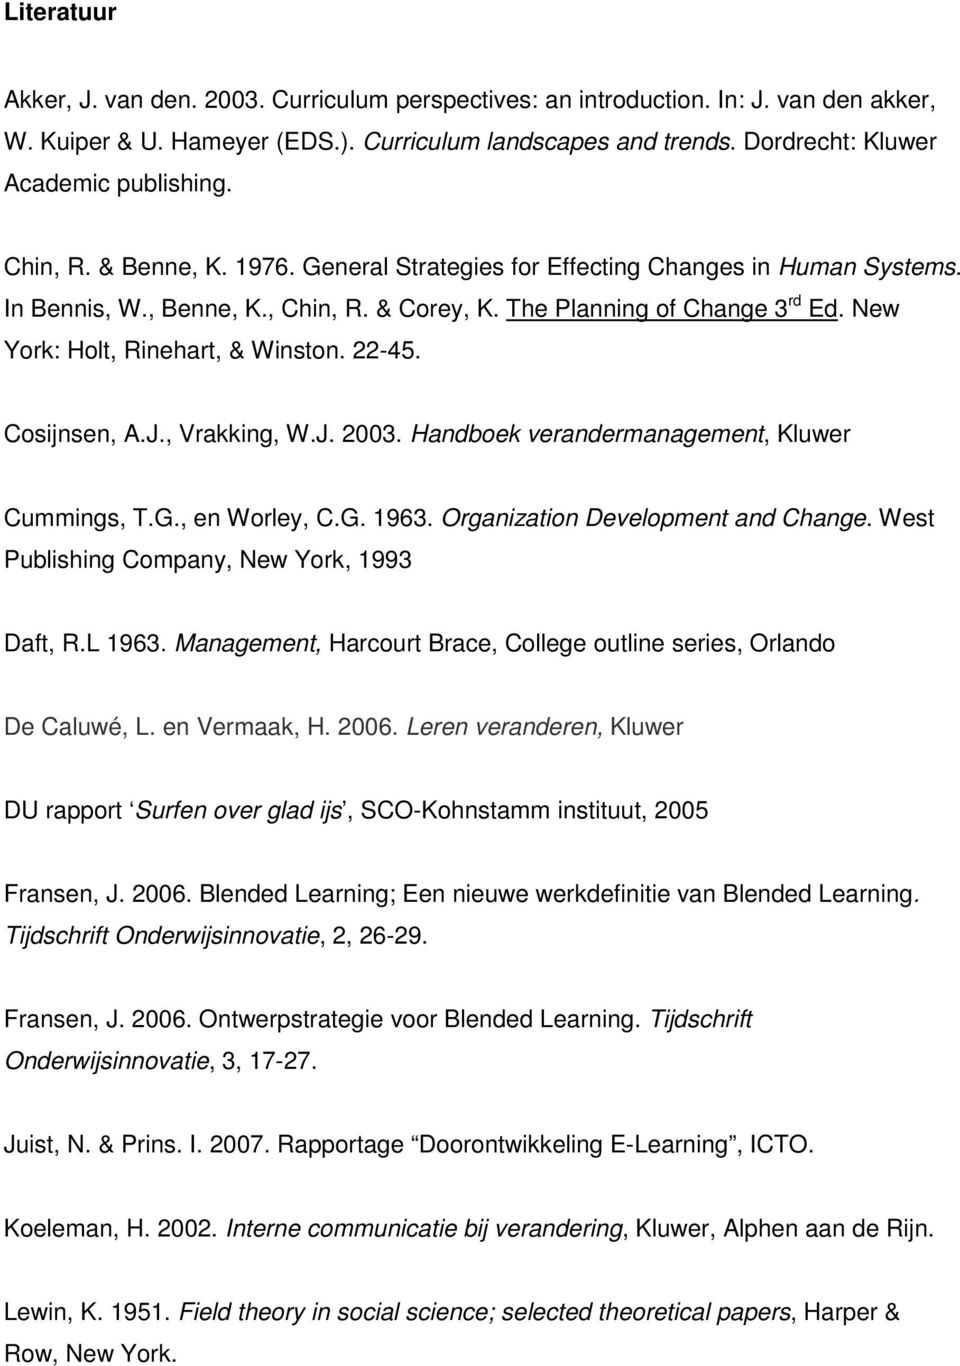 The Planning of Change 3 rd Ed. New York: Holt, Rinehart, & Winston. 22-45. Cosijnsen, A.J., Vrakking, W.J. 2003. Handboek verandermanagement, Kluwer Cummings, T.G., en Worley, C.G. 1963.